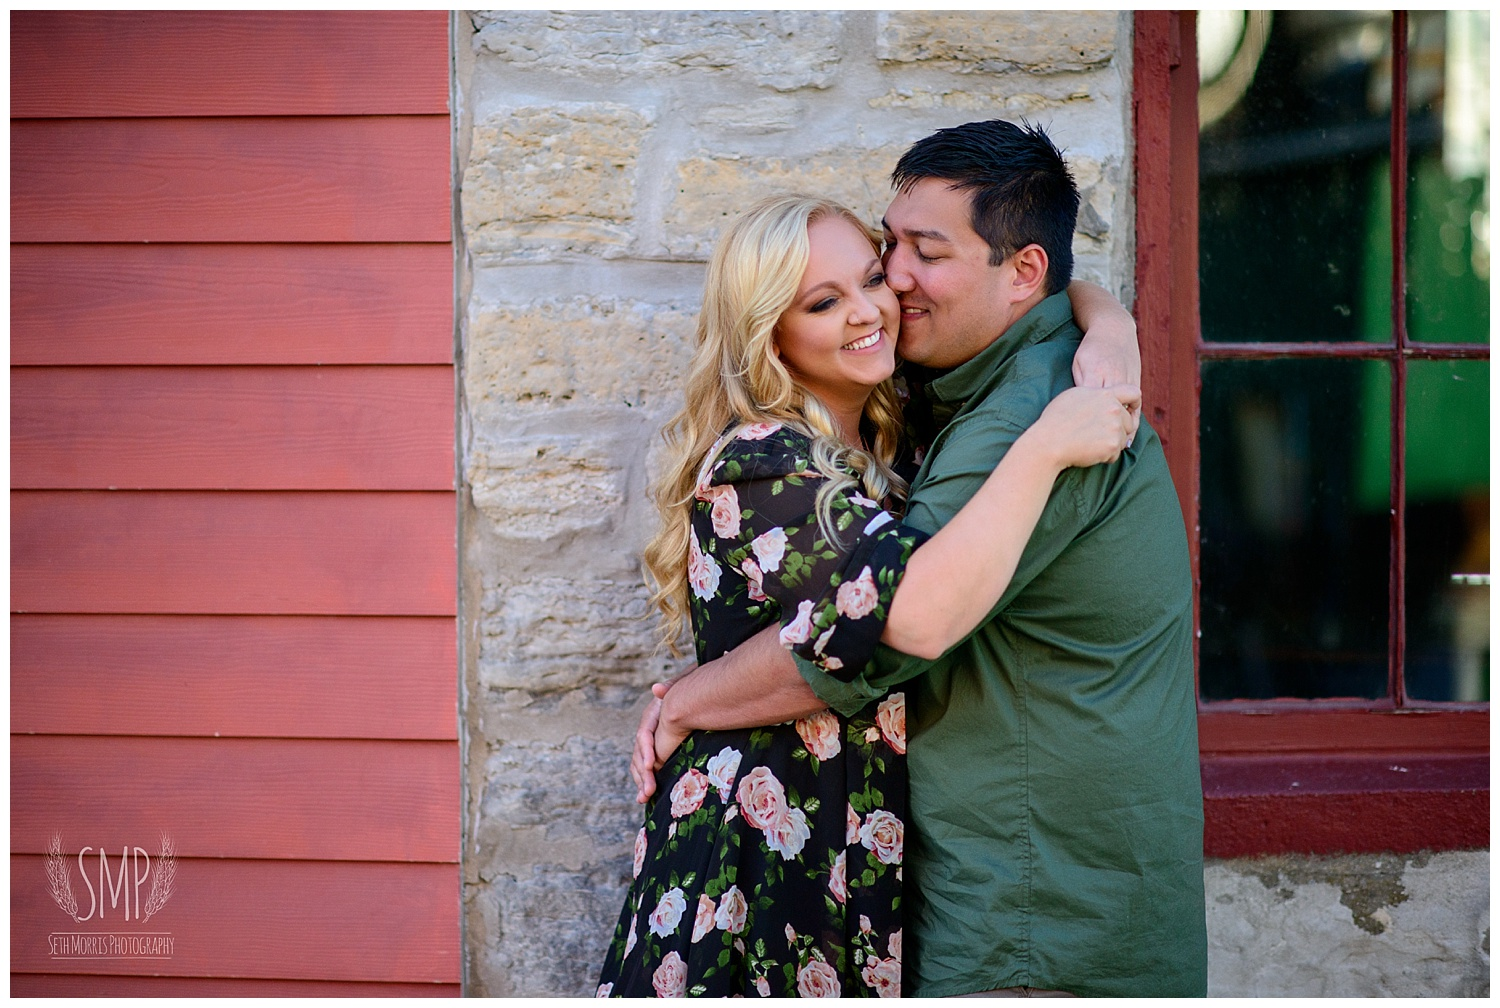 utica-engagement-photographer-downtown-pictures-6.jpg